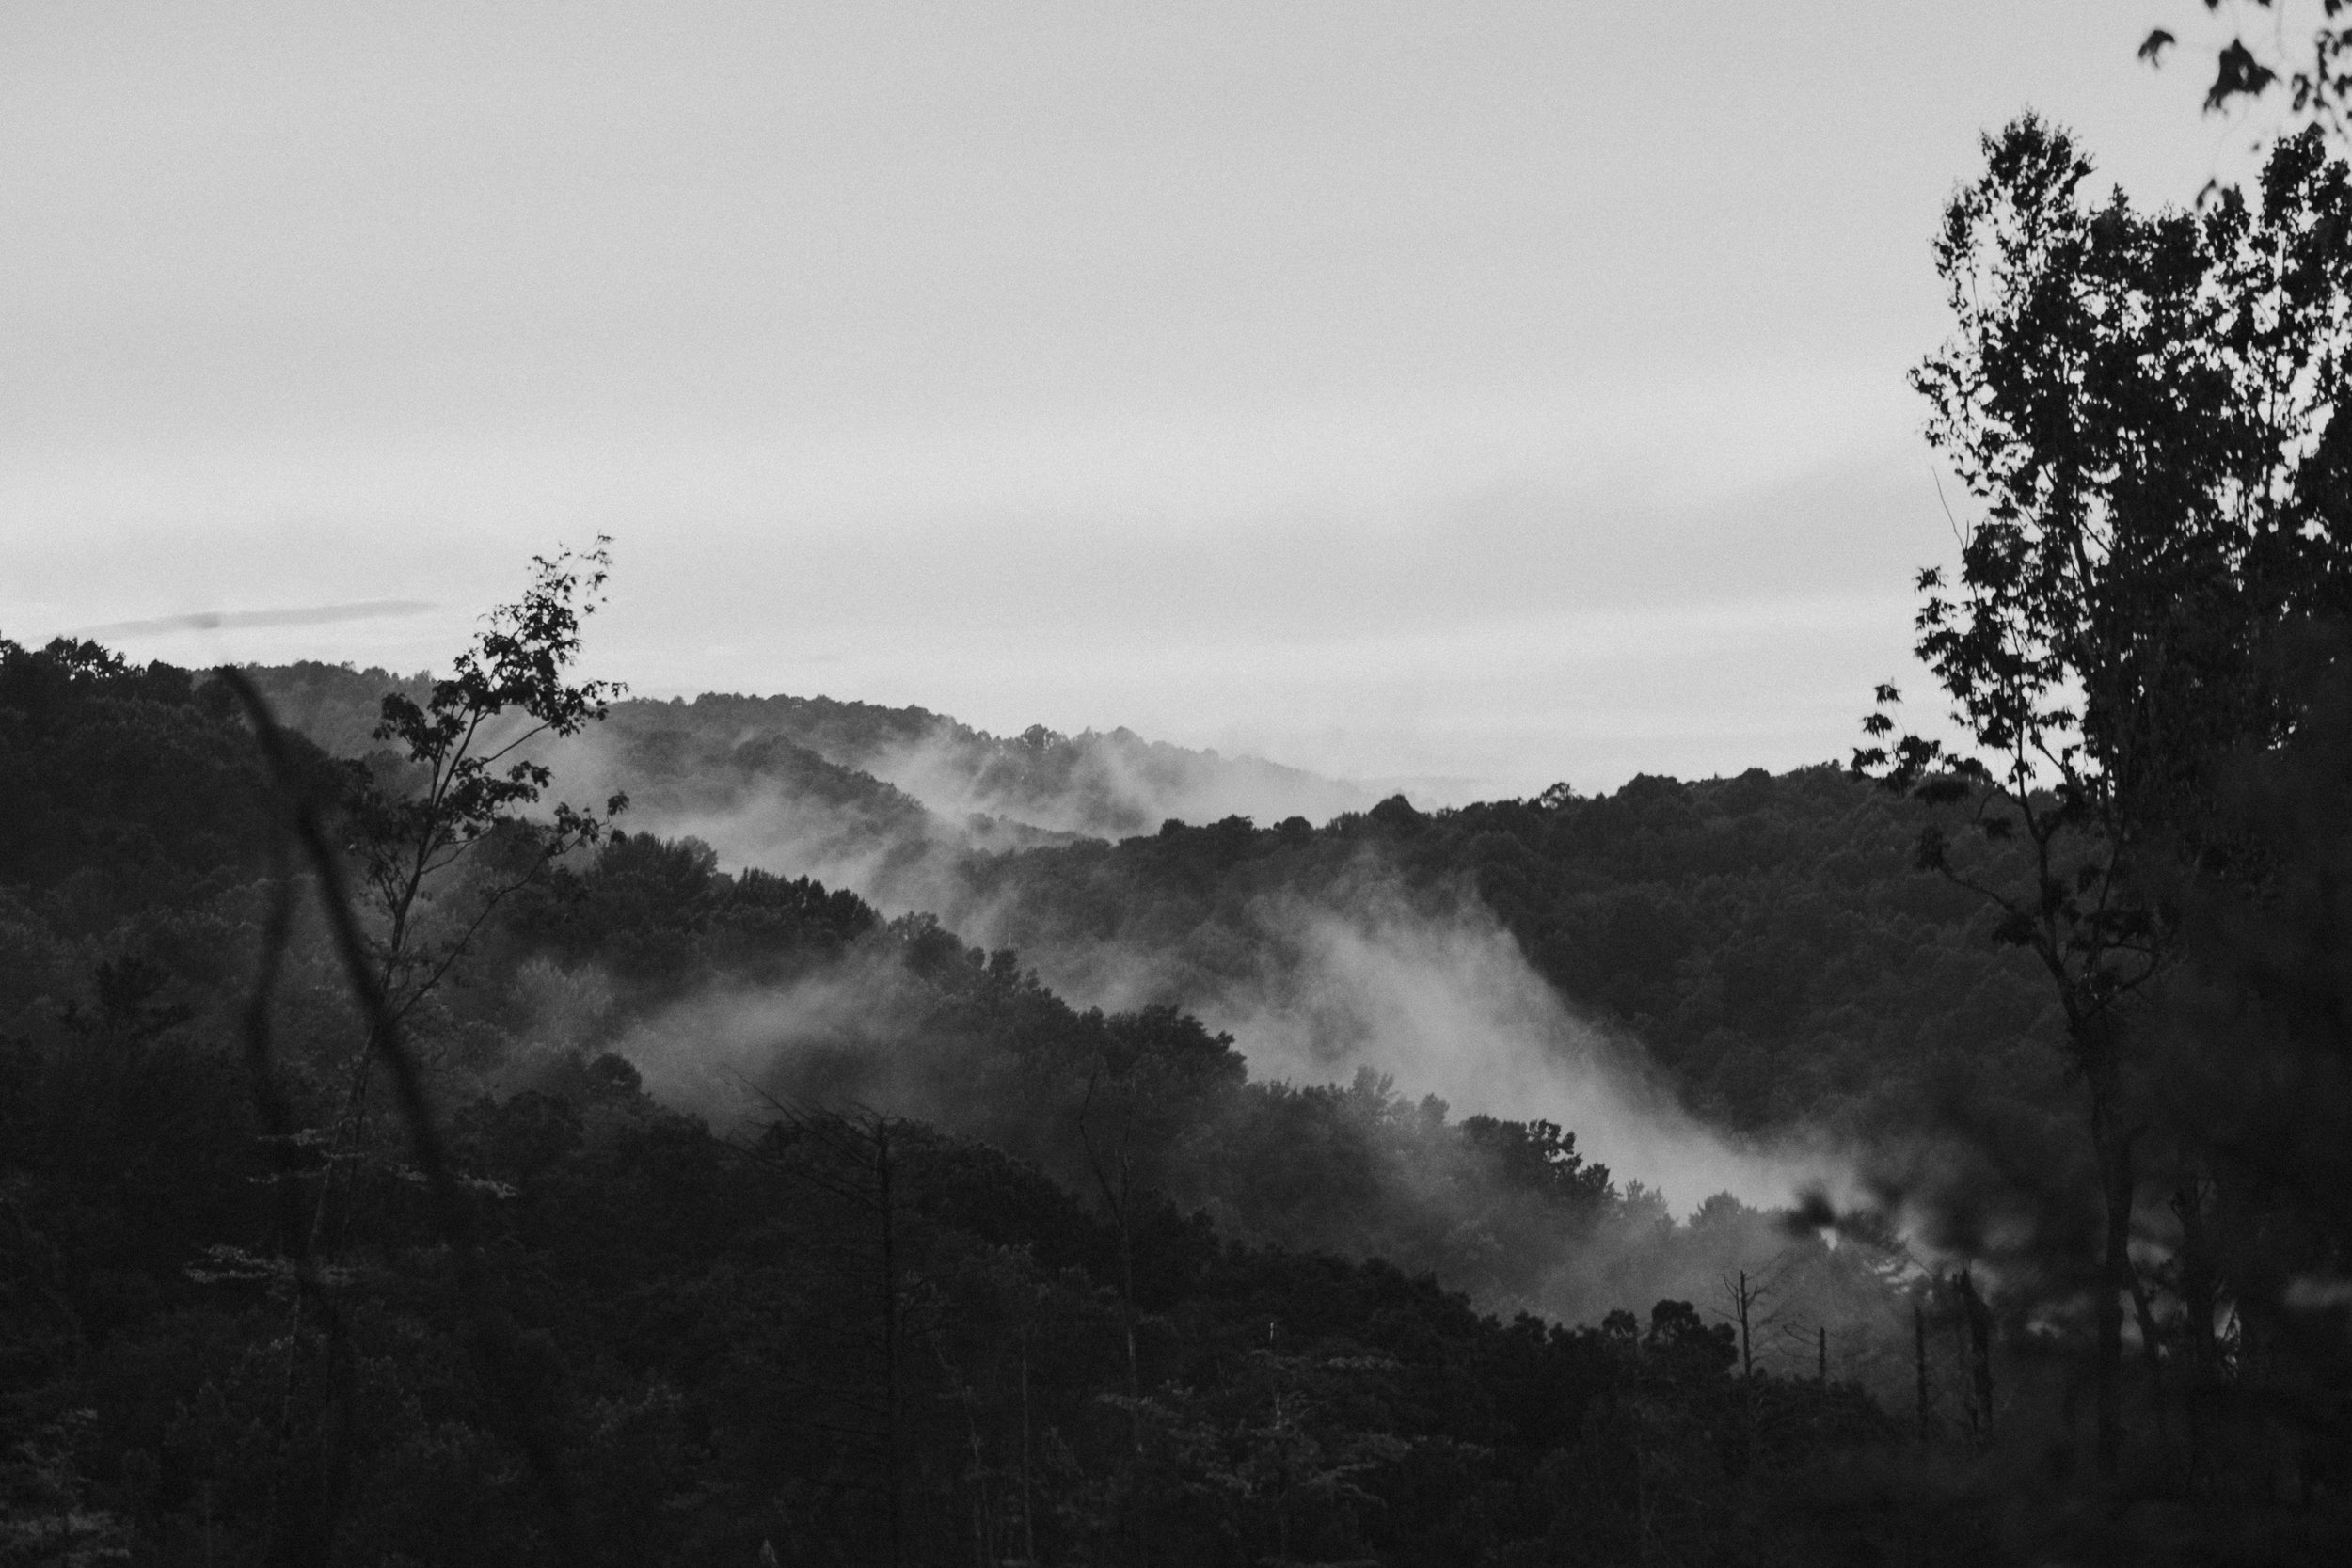 bw- fog in the trees - getoutside -adventurealliance